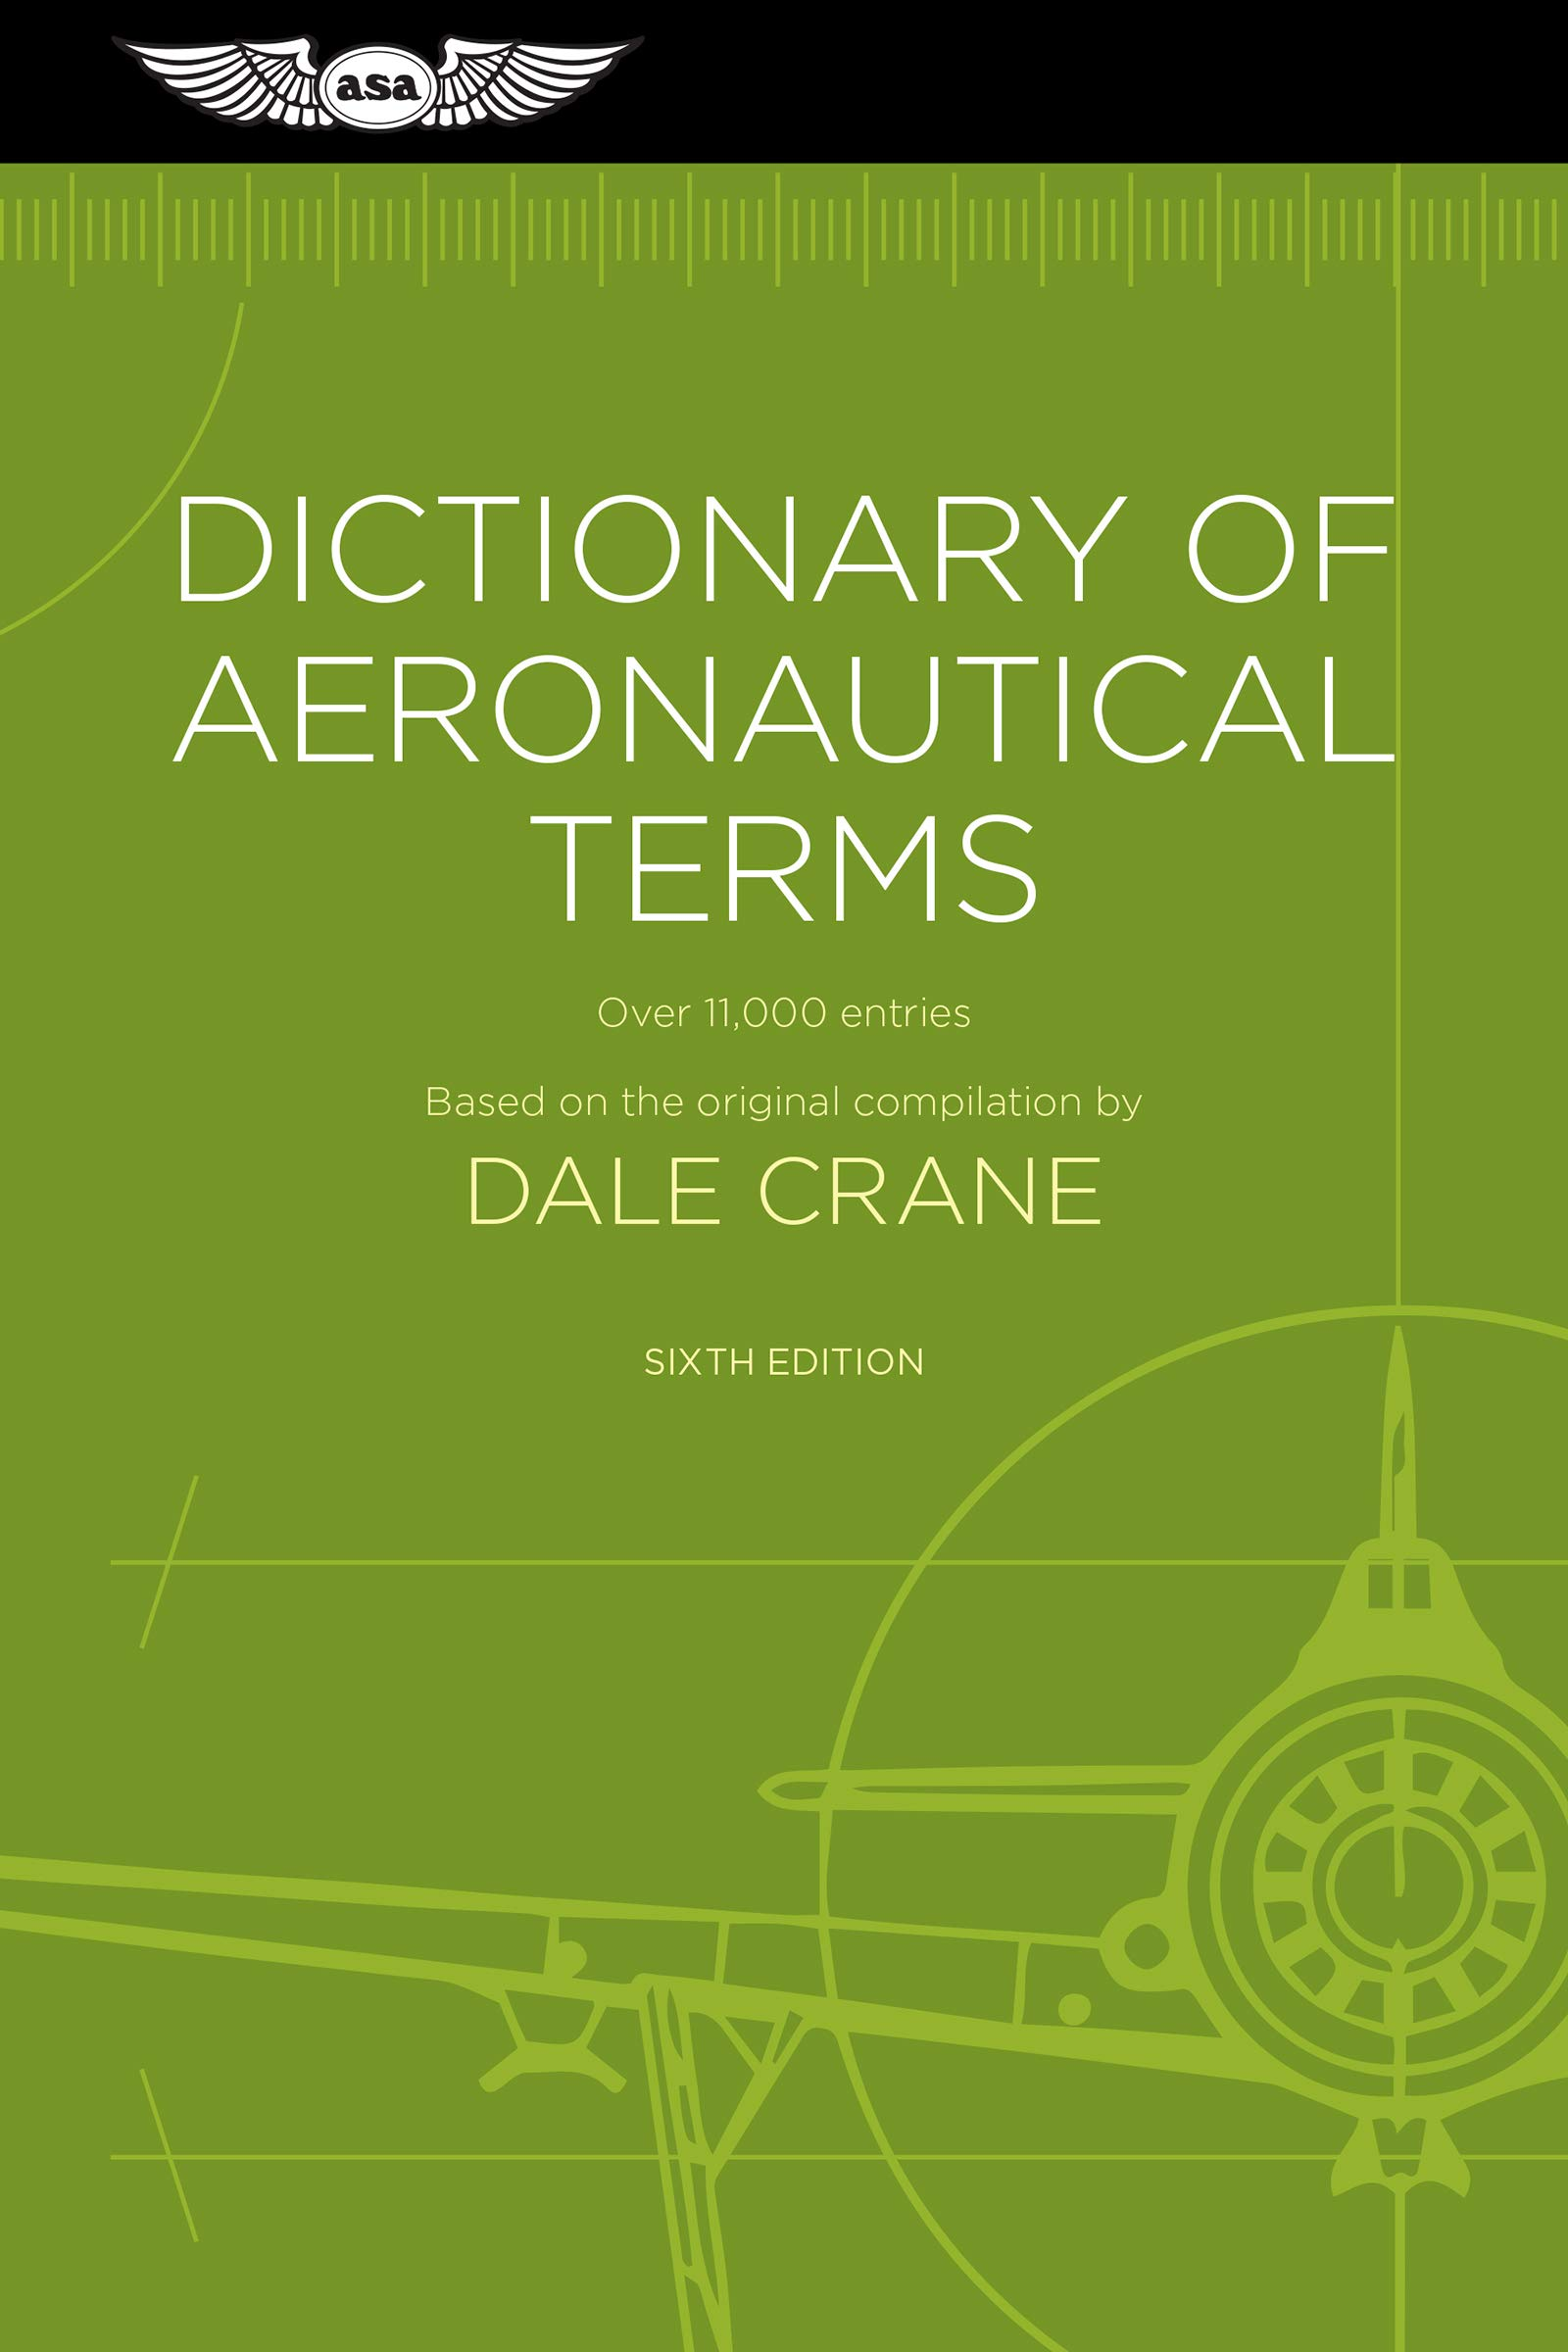 Image OfDictionary Of Aeronautical Terms: Over 11,000 Entries